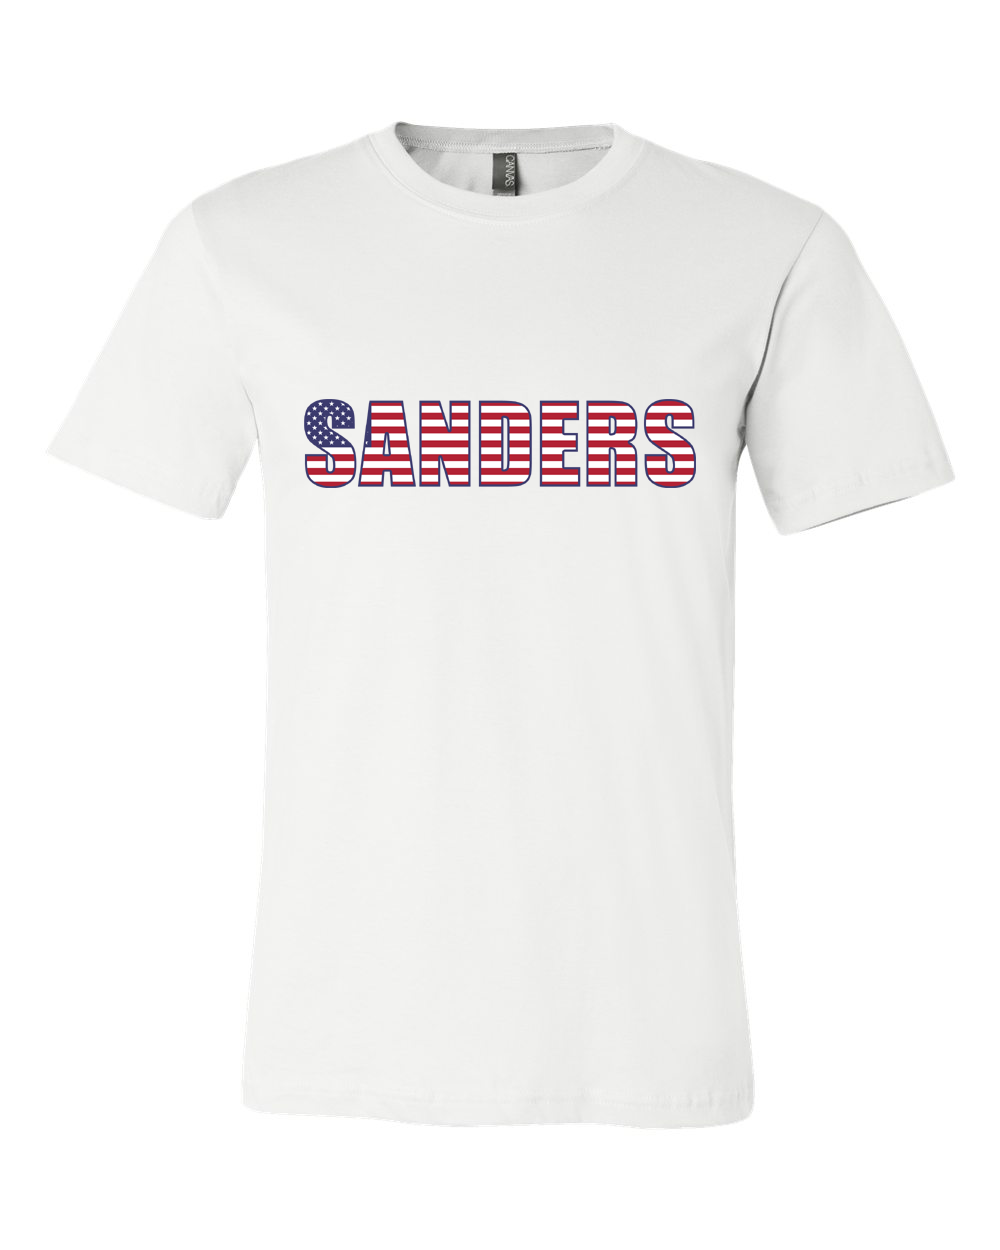 Sanders-Unisex-Short-Sleeve-Jersey-T-Shirt-by-iTEE.com